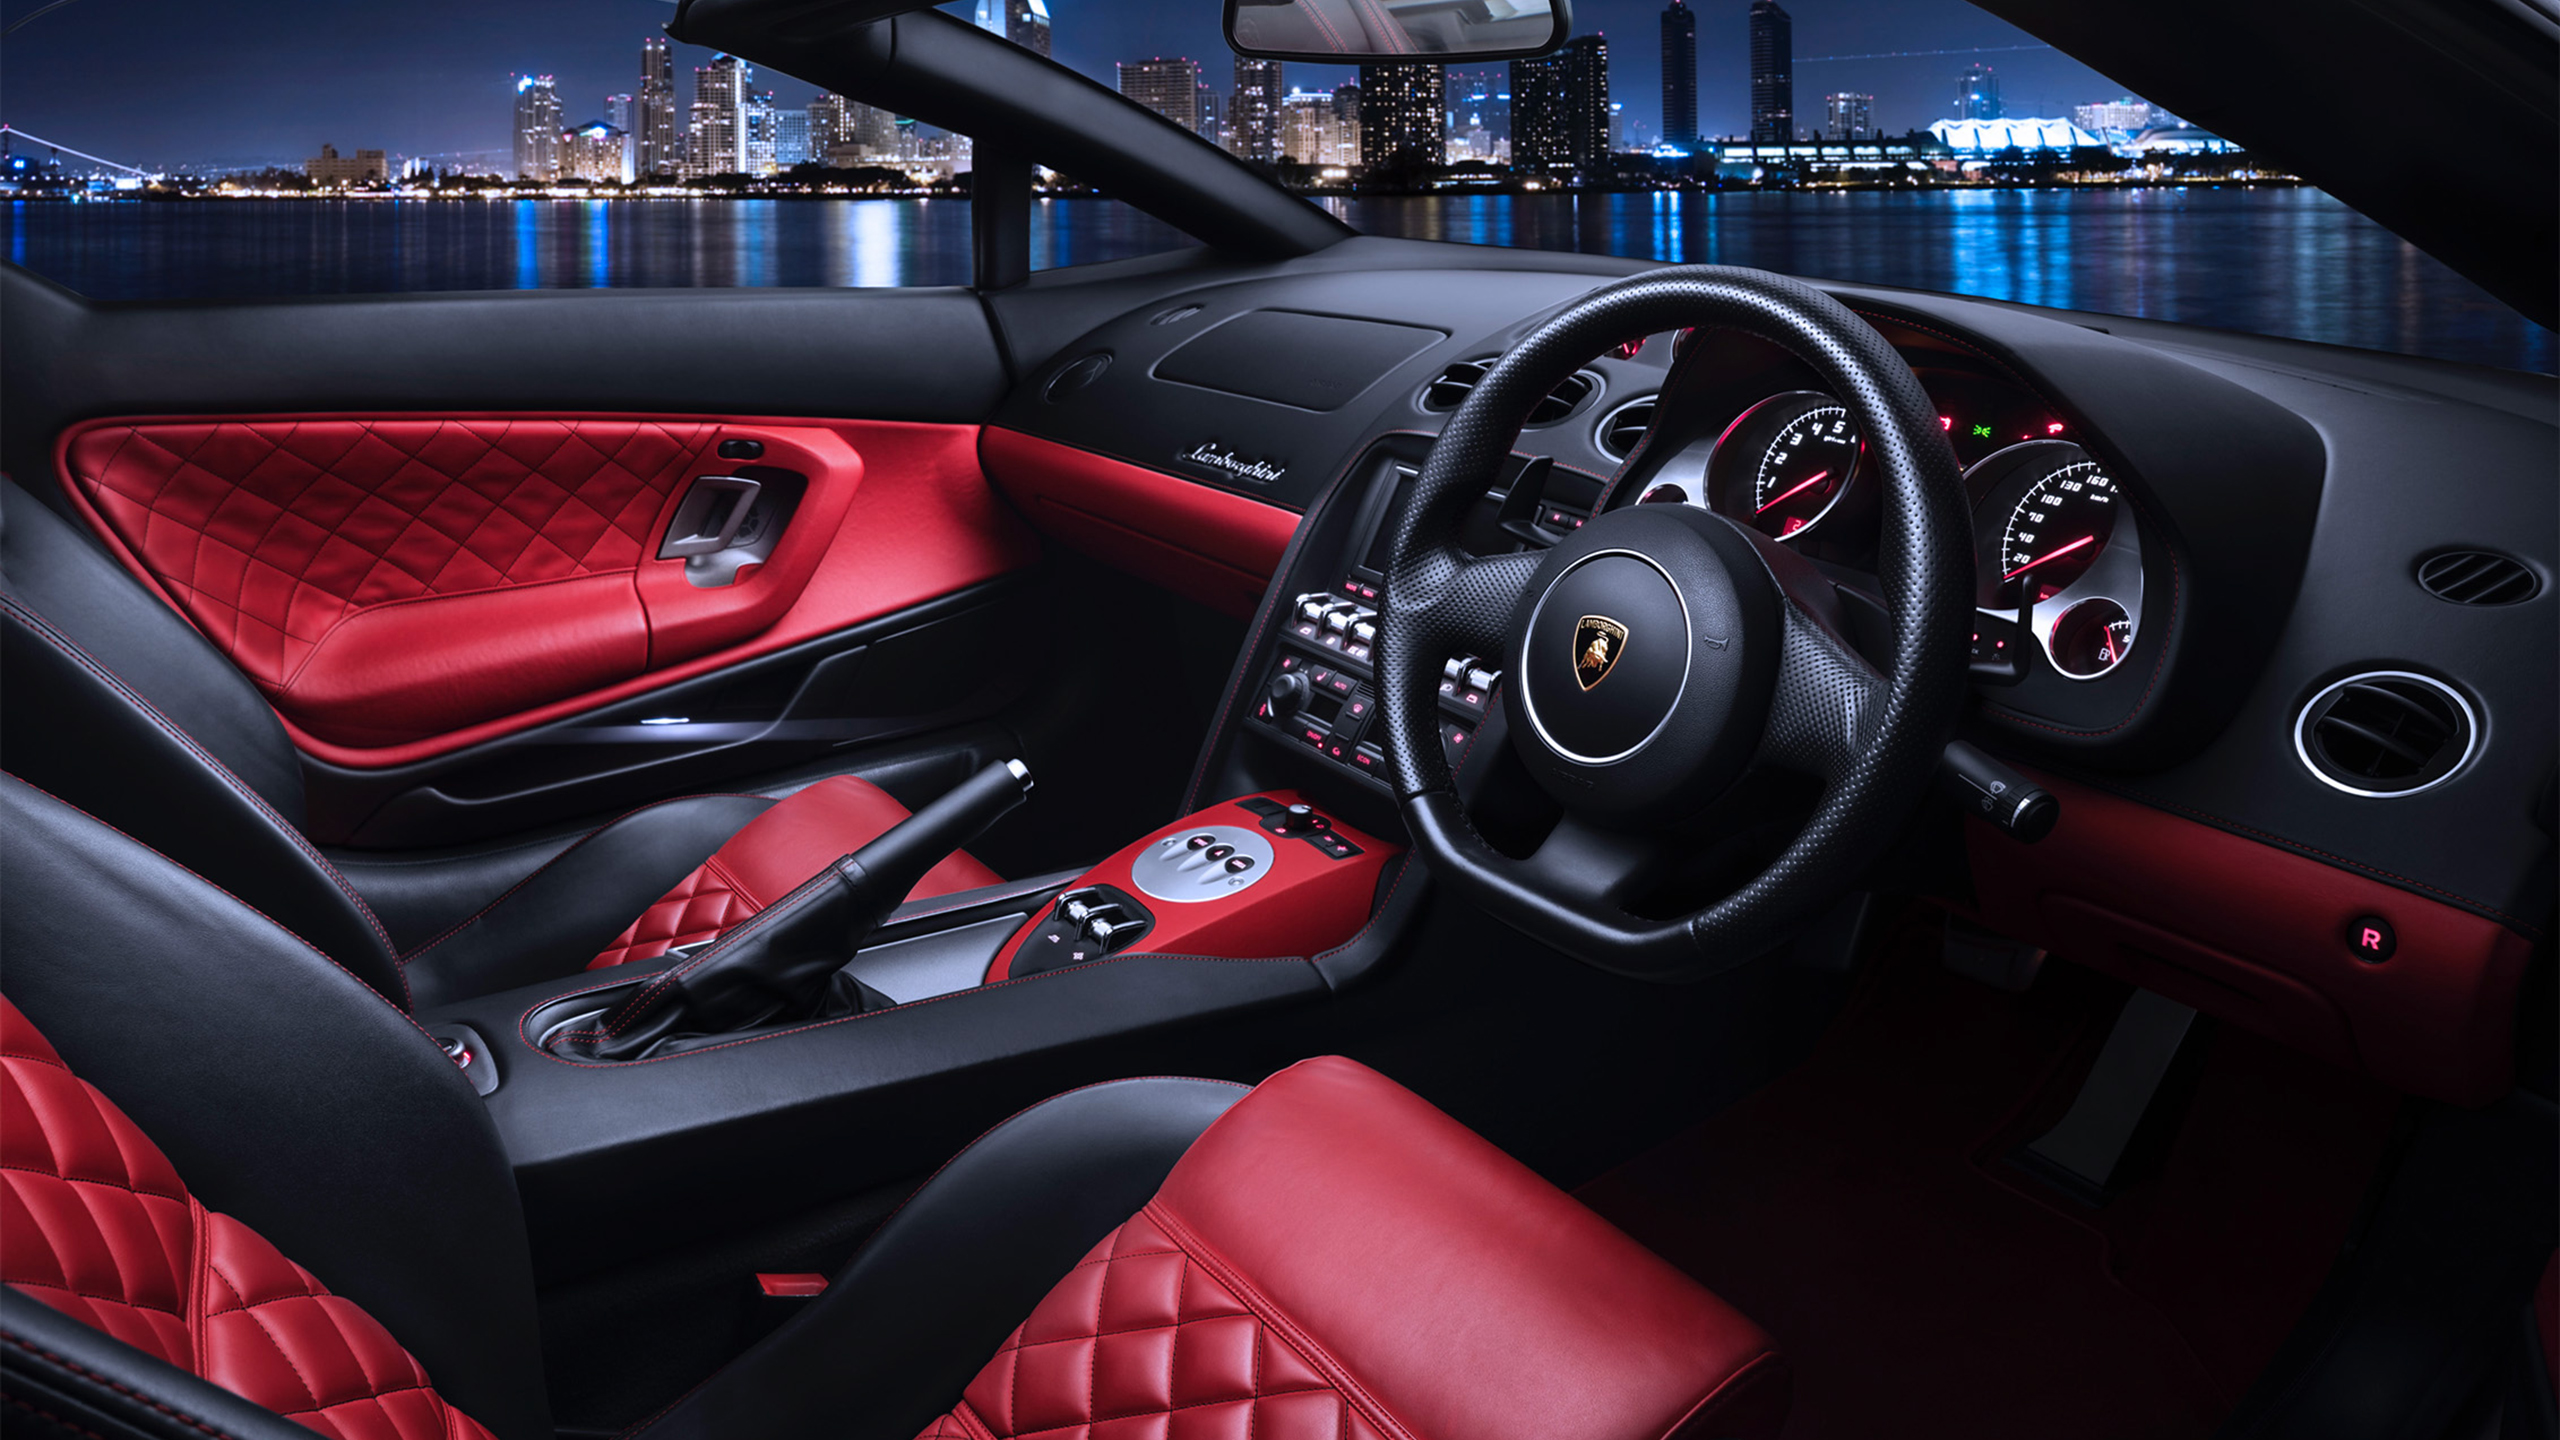 Lamborghini Gallardo Interior Wallpaper Hd Car Wallpapers Id 12510